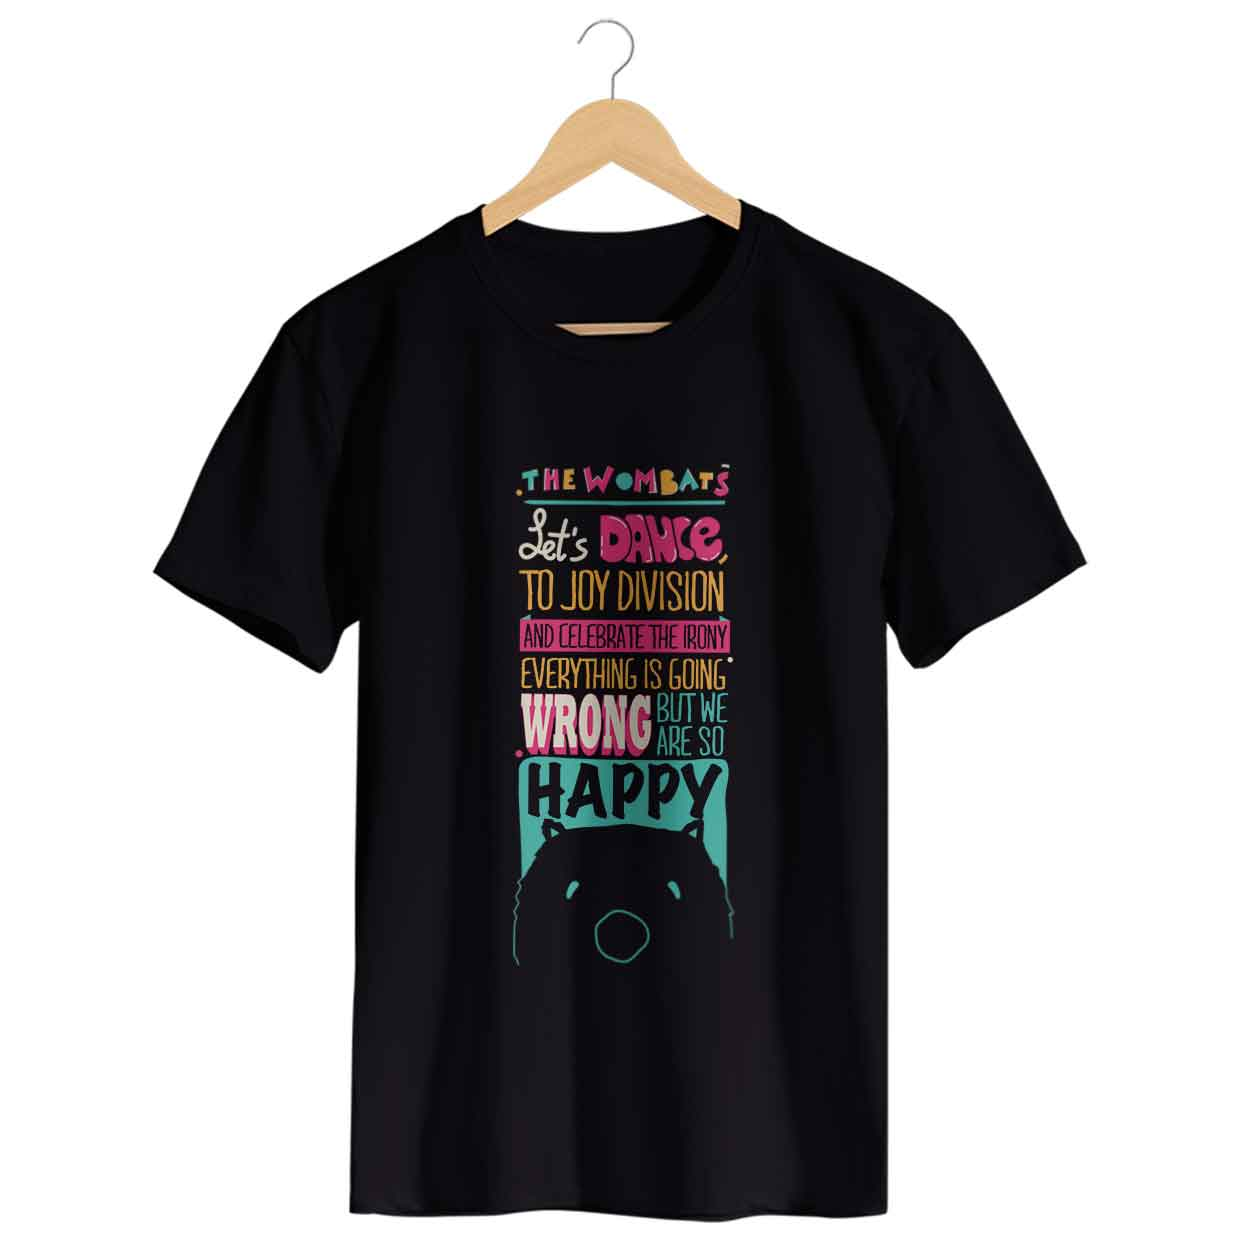 Camiseta - Let's Dance - The Wombats - Masculino